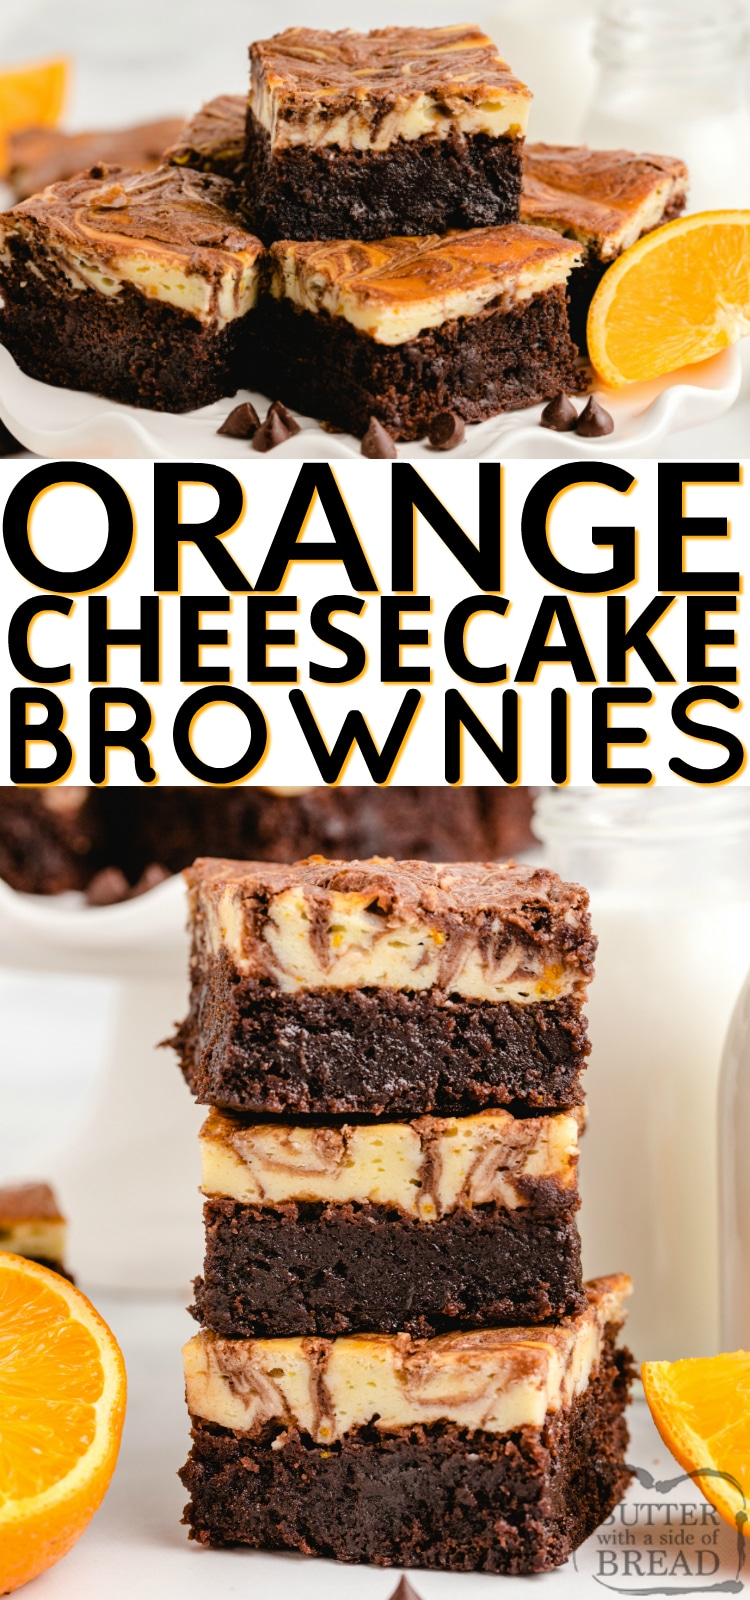 Orange Cheesecake Brownies made with a delicious orange cheesecake layer that is swirled with a simple brownie mix. The orange and chocolate combination is absolutely incredible!